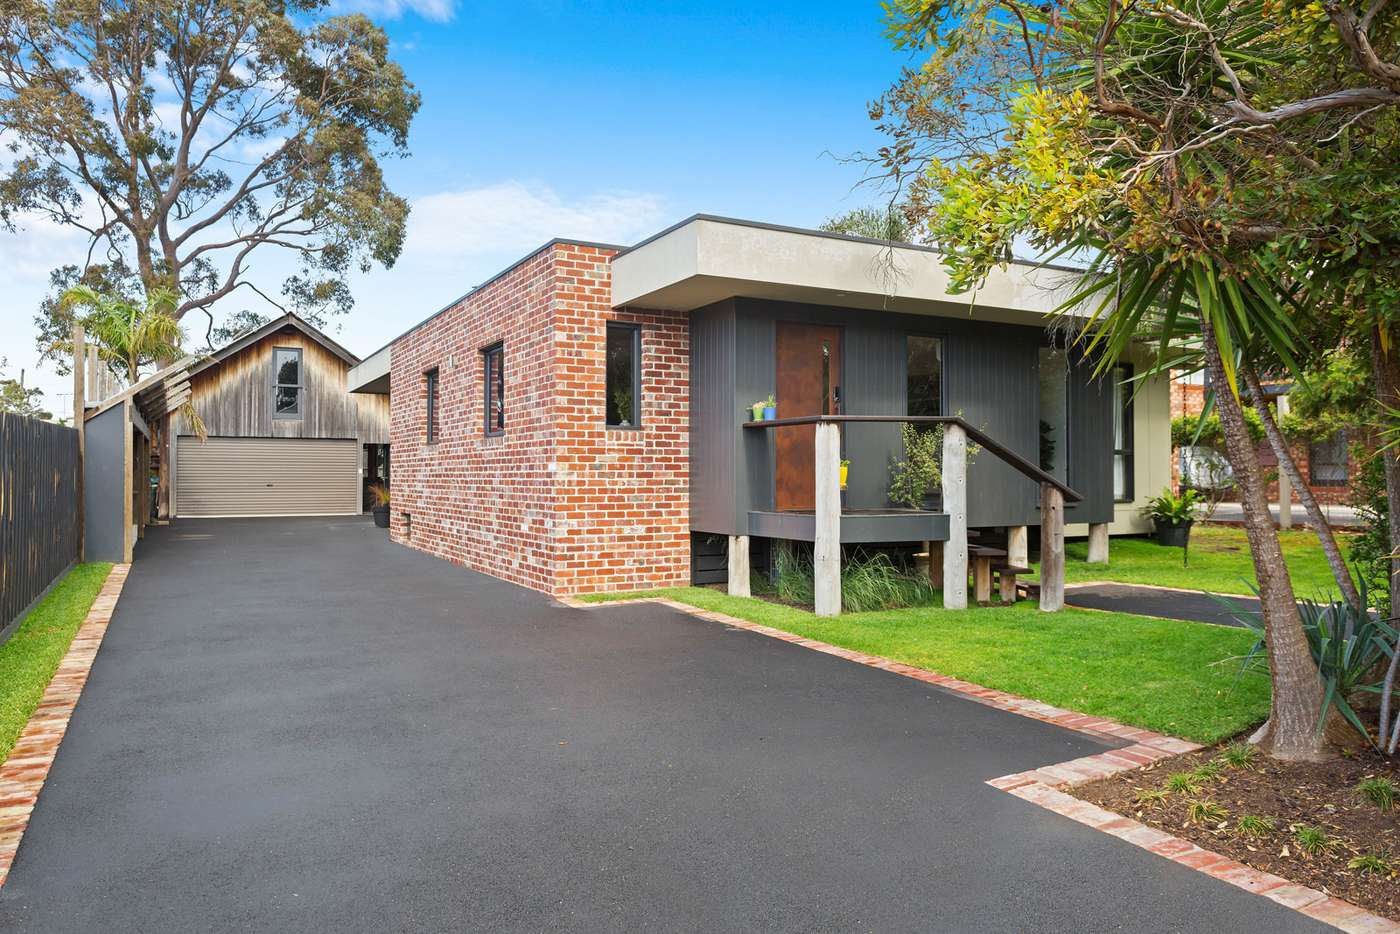 Main view of Homely house listing, 7 Monaco Parade, Dromana, VIC 3936